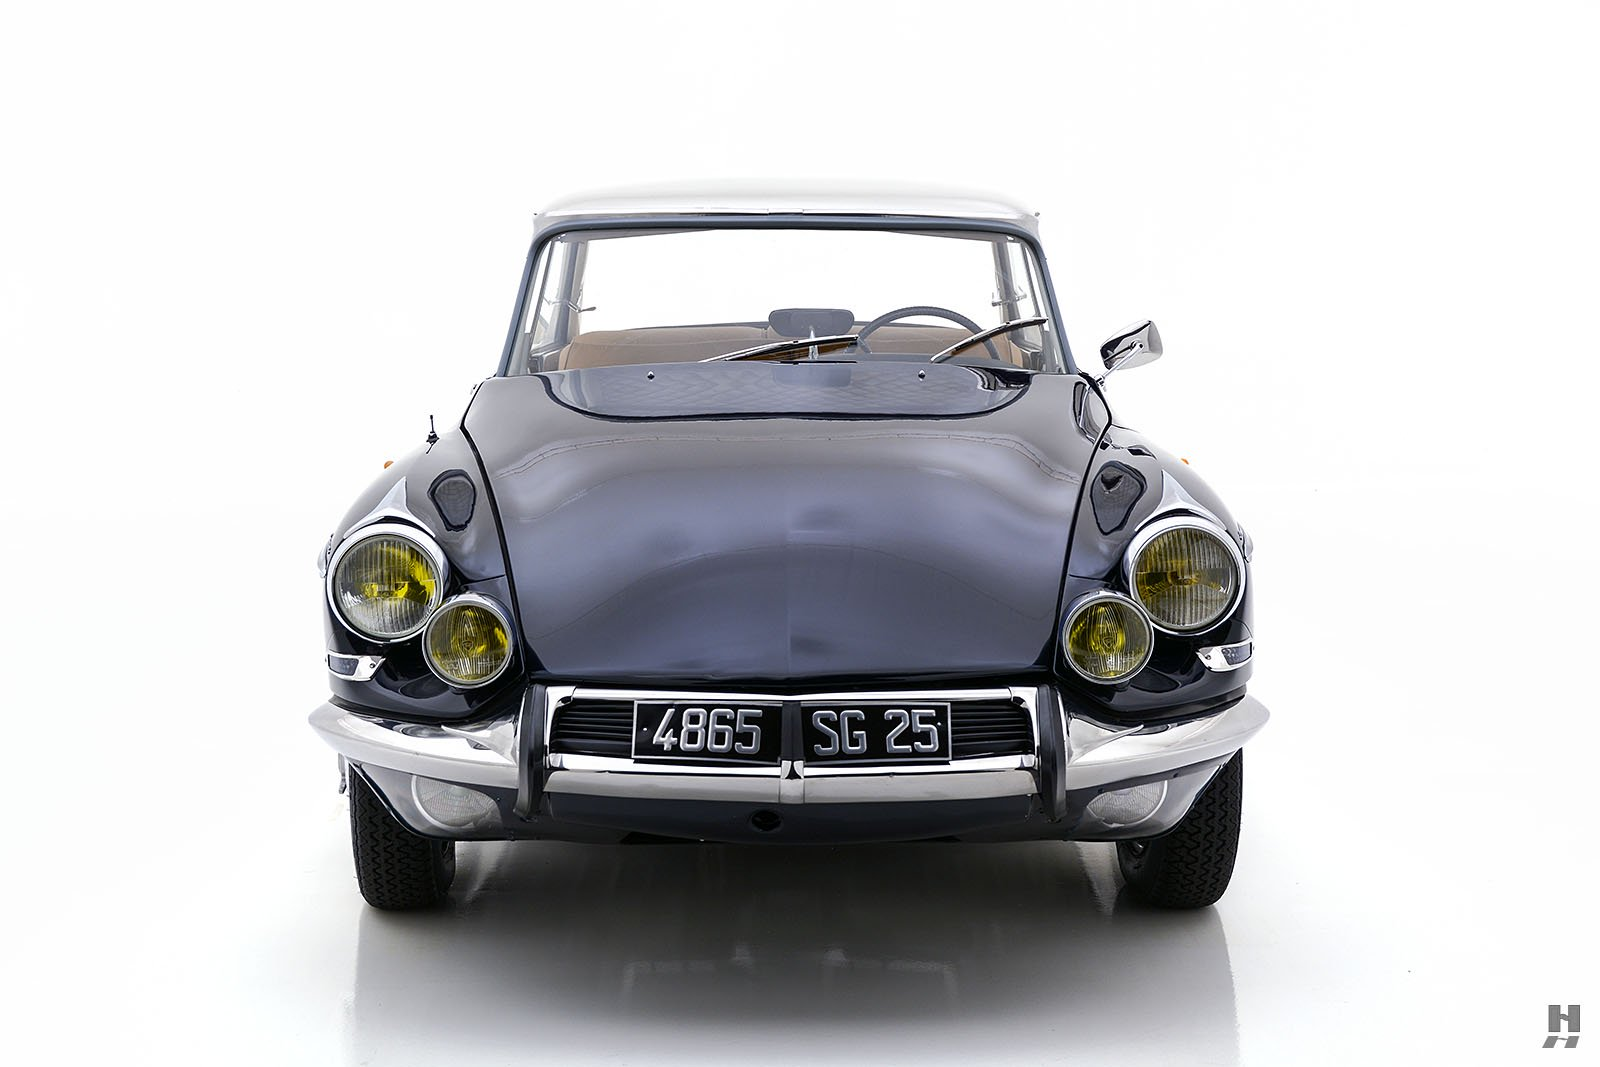 Citroen-DS21-Concorde-coupe-for-sale-3